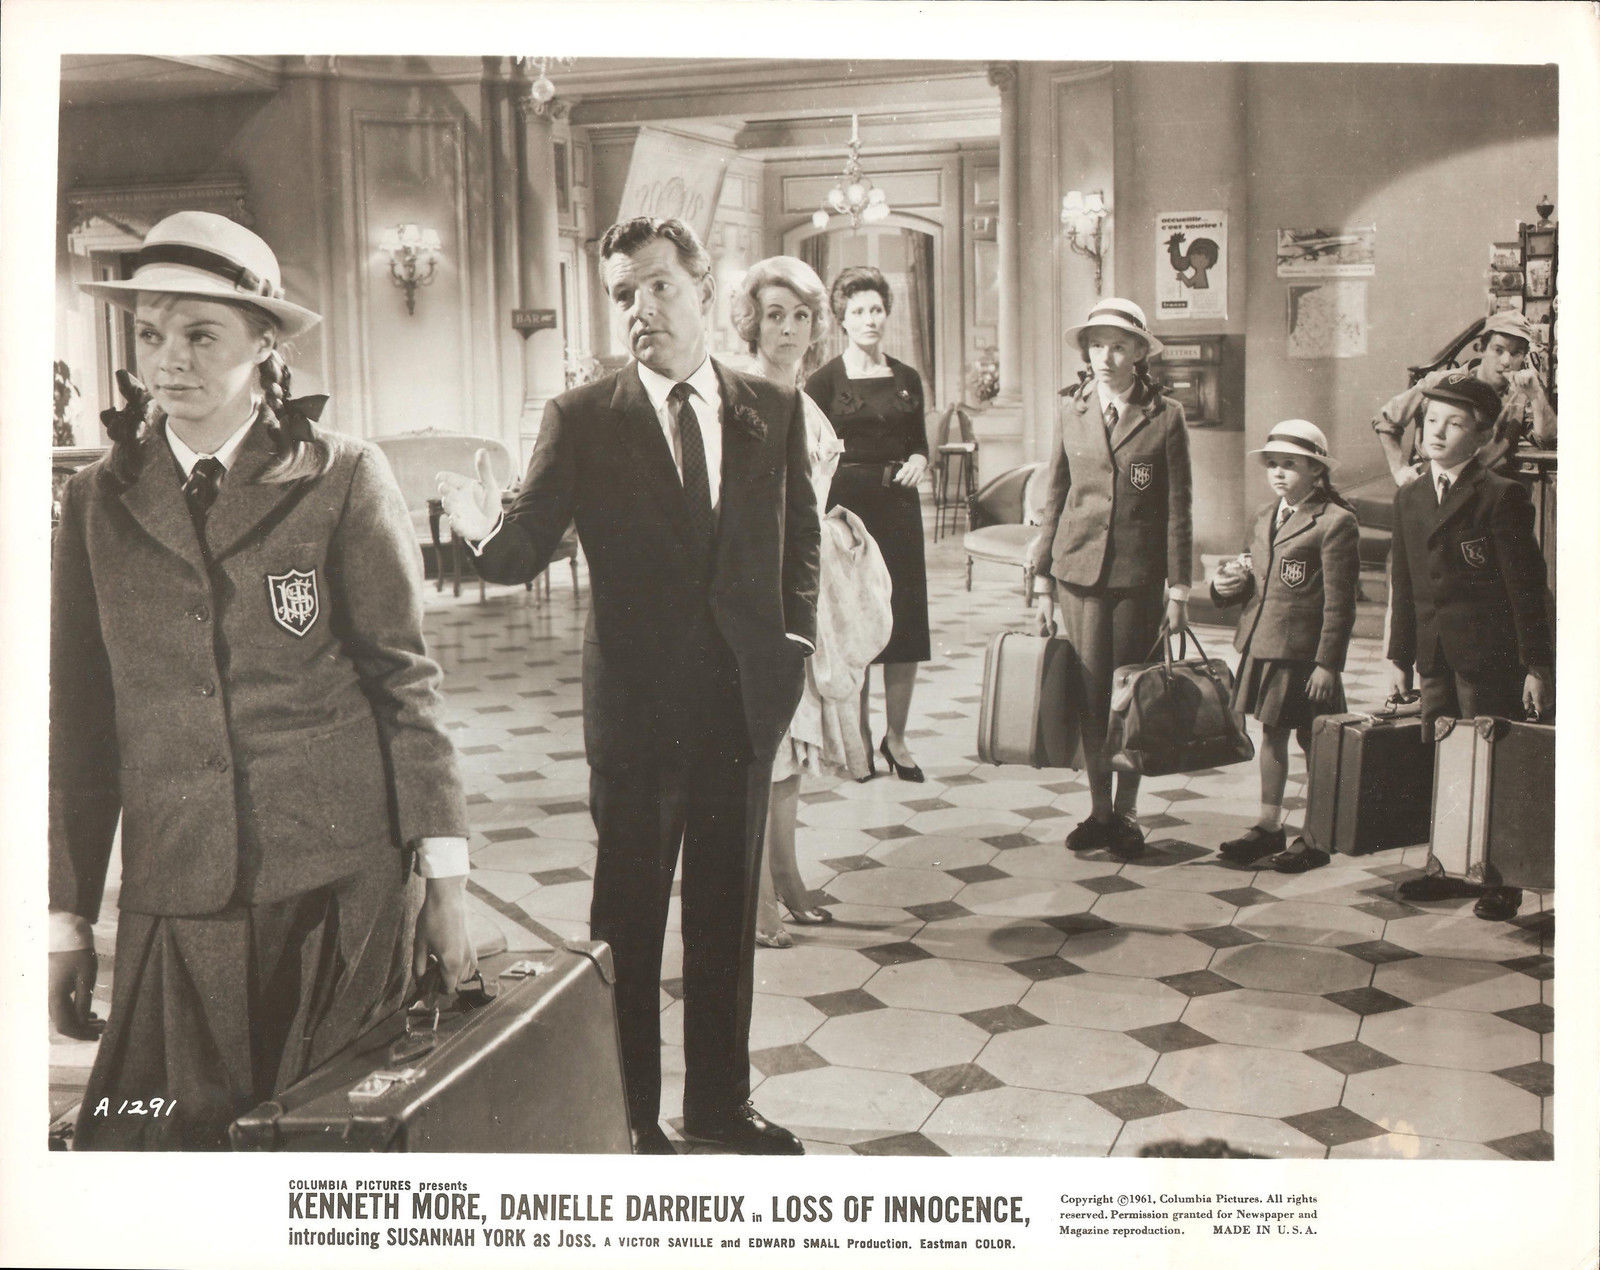 Jane Asher, Danielle Darrieux, Elizabeth Dear, Kenneth More, Claude Nollier, Richard Williams, and Susannah York in The Greengage Summer (1961)